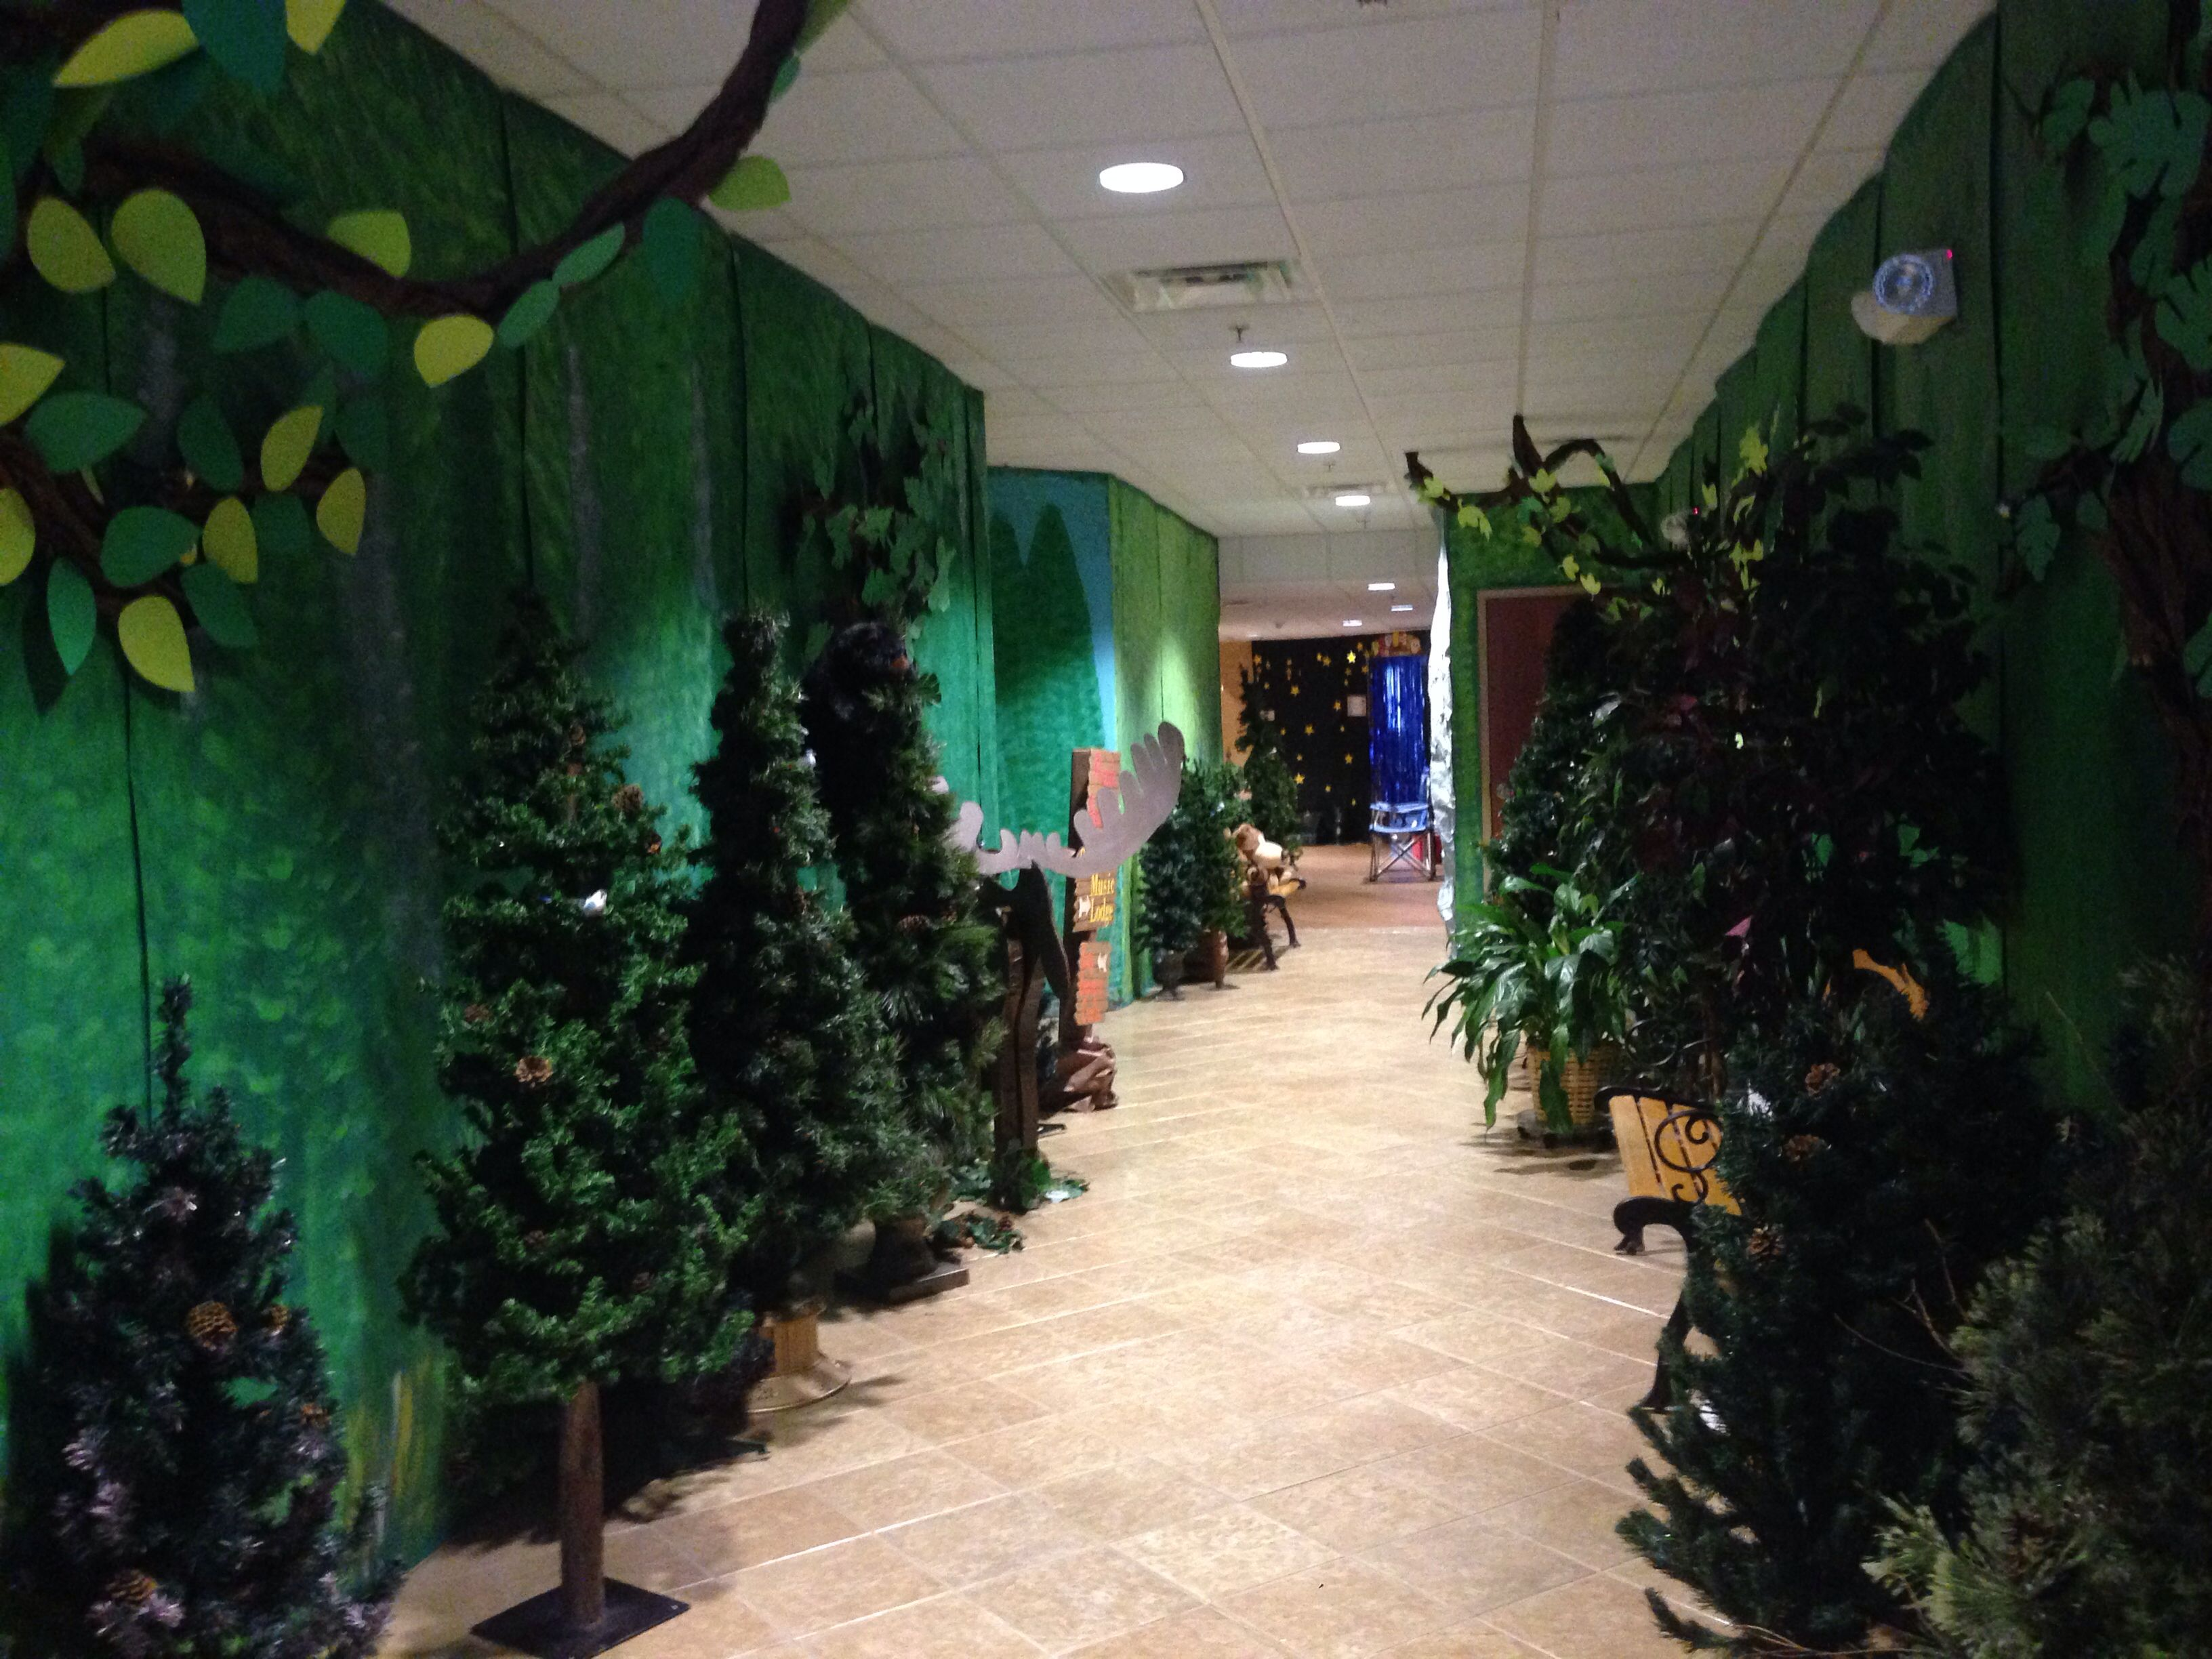 Exceptional Vbs Camping Theme Decorating Ideas Part - 7: Decorations For Sonrise National Park VBS 2014 First Baptist Church Of  Belfry